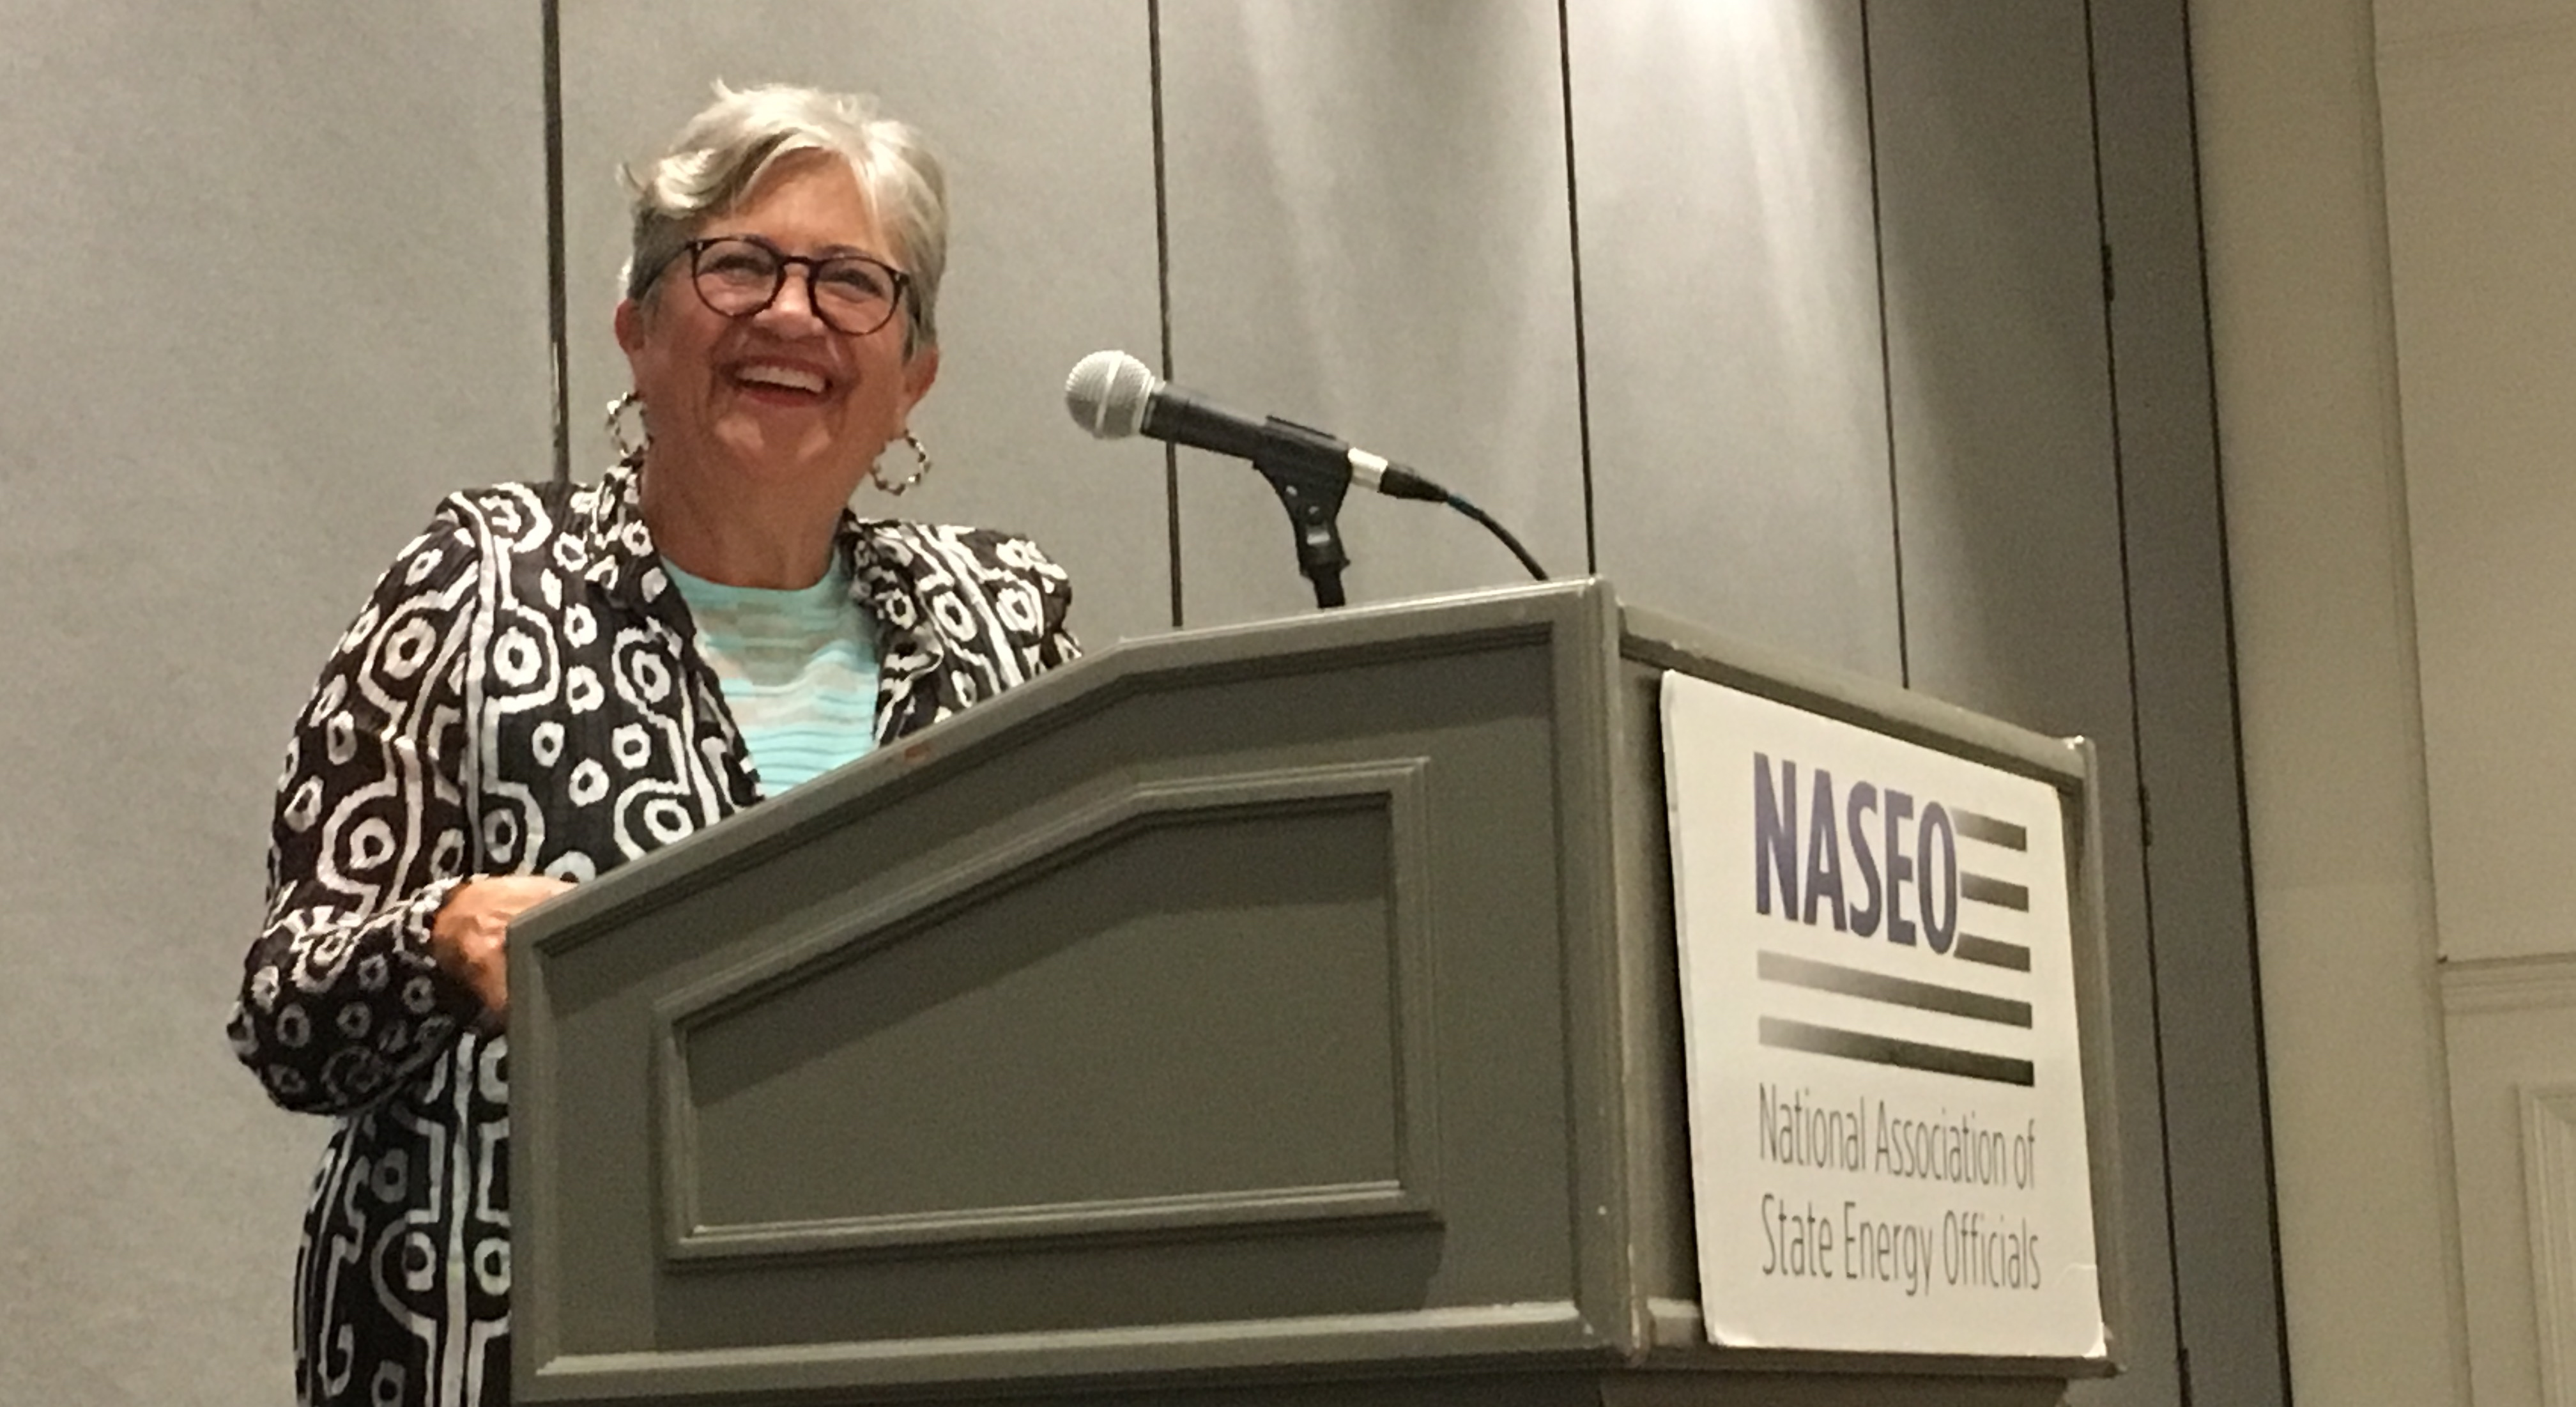 Annual Meeting Keynote Stresses State Climate Action